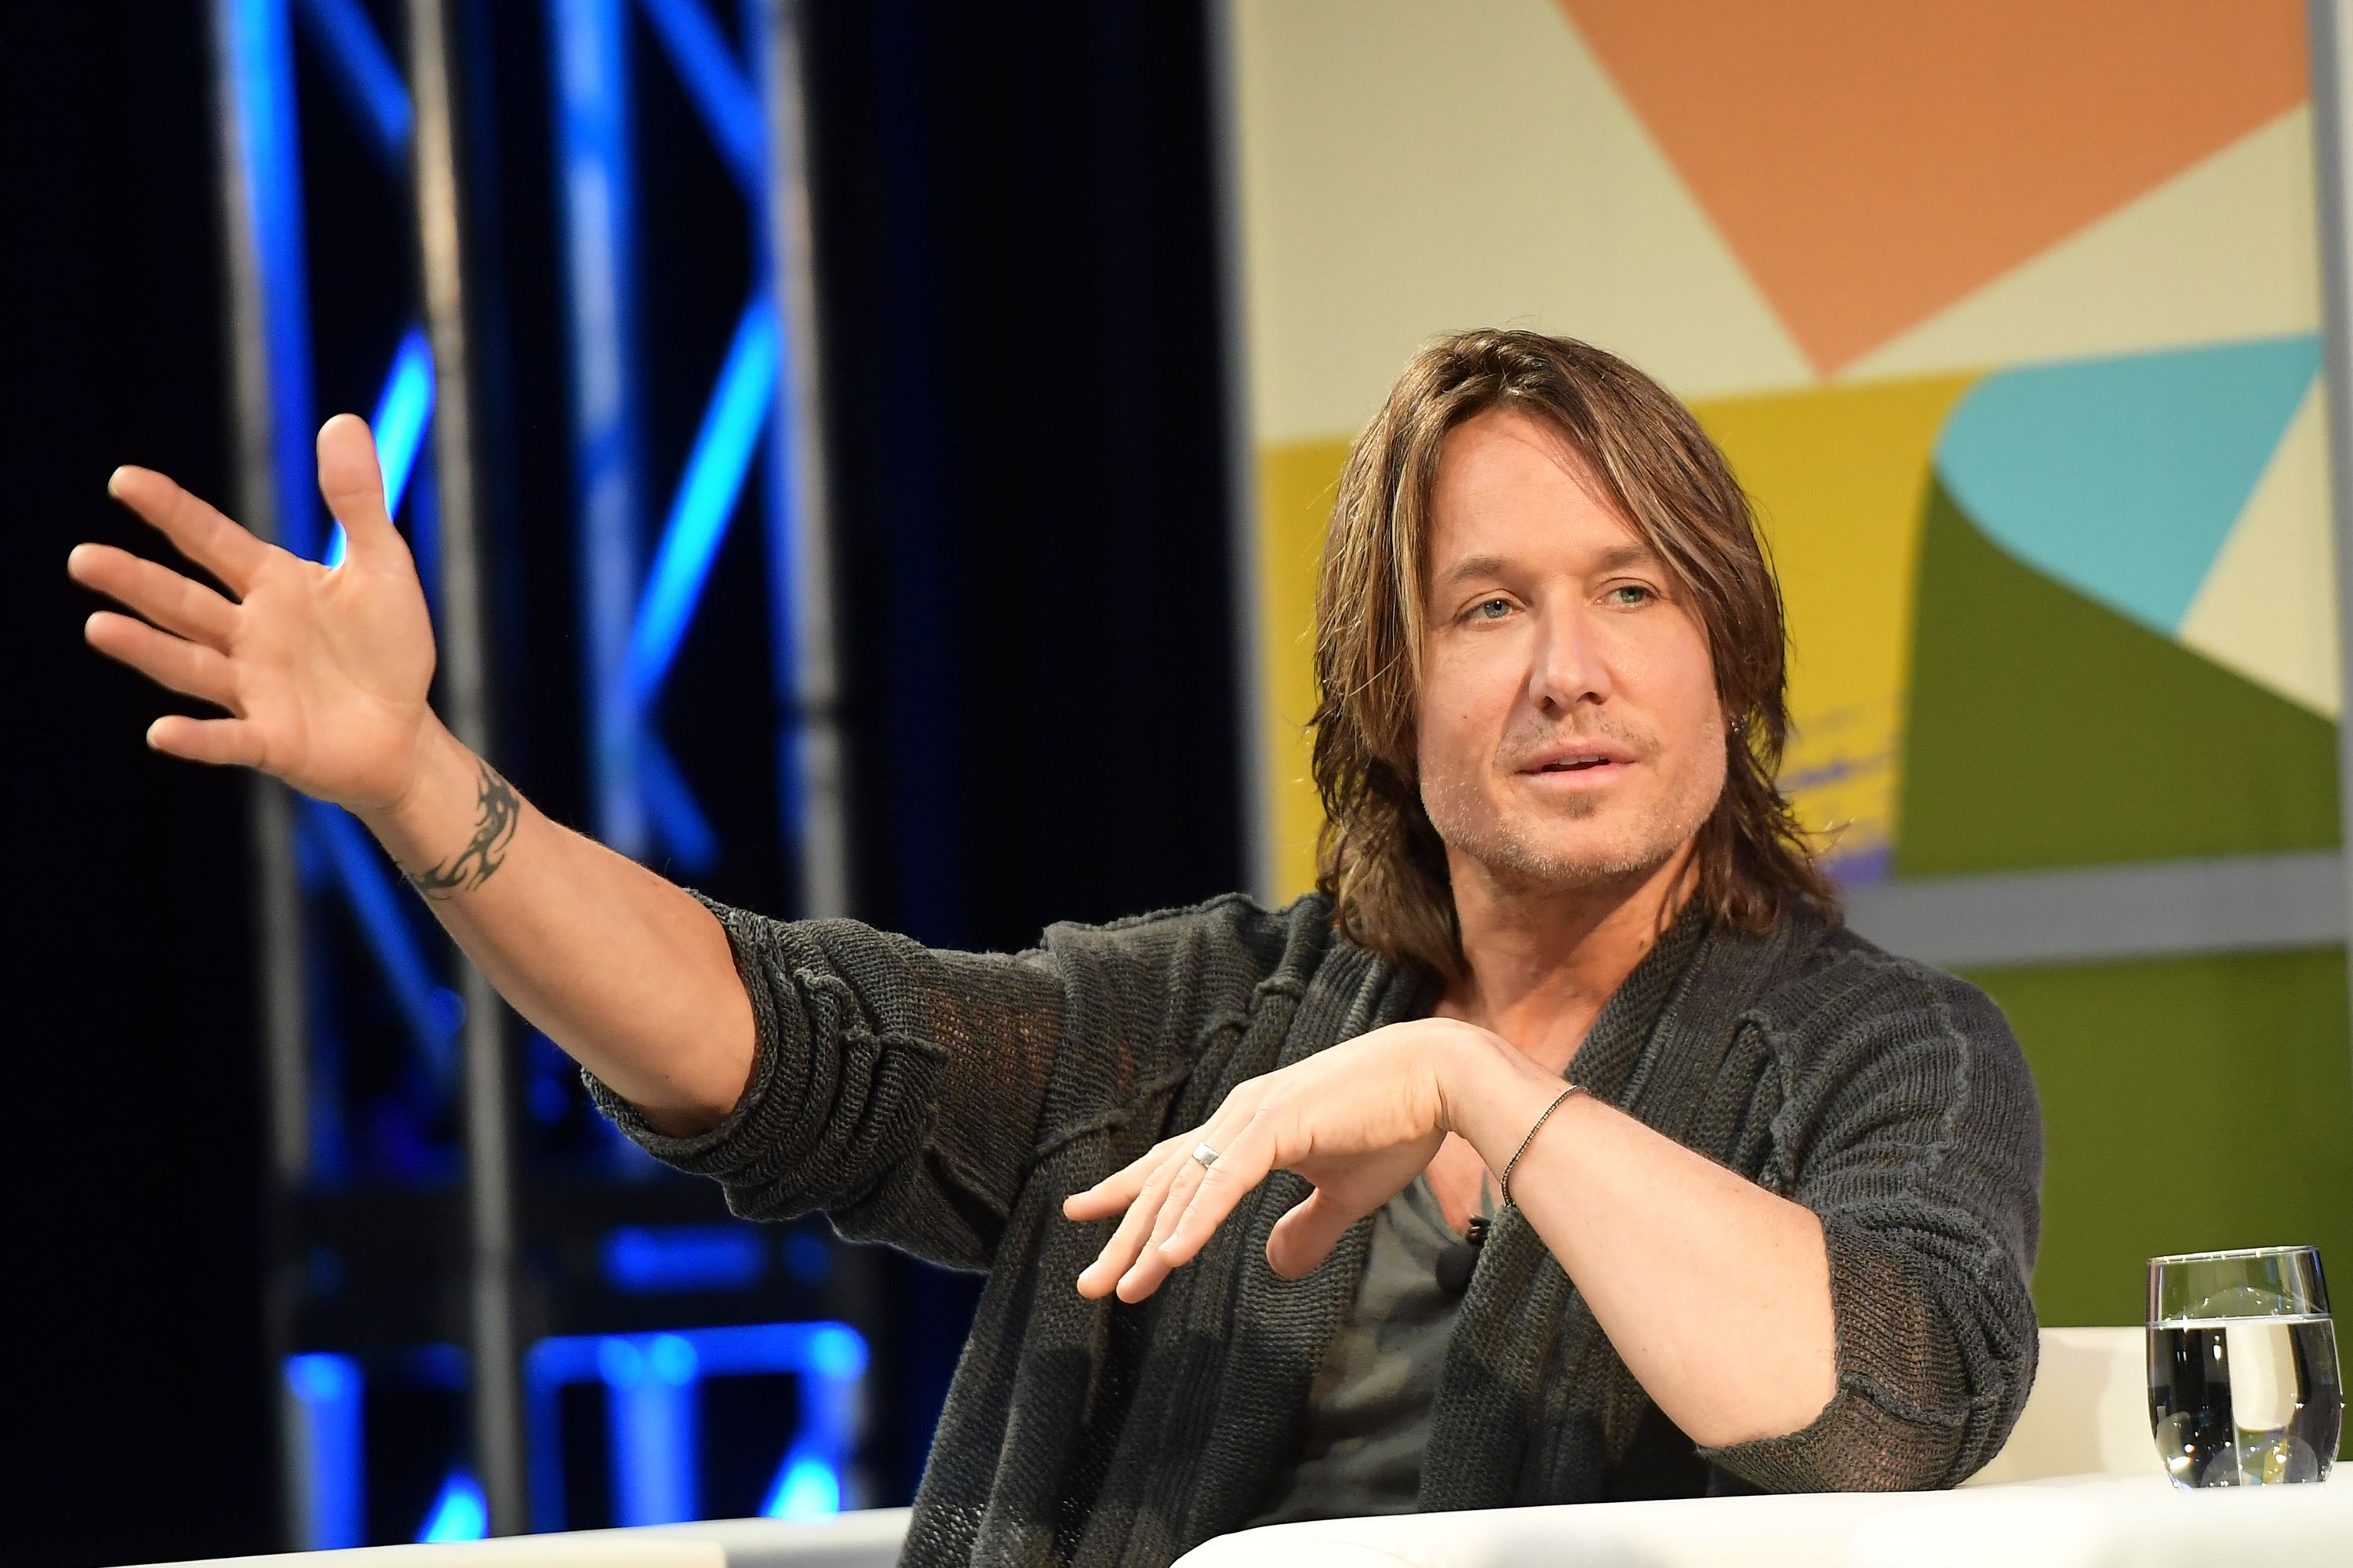 Keith Urban attends A Conversation with Keith Urban 2018 SXSW Conference and Festivals at Austin Convention Center on March 16, 2018 in Austin, Texas | Photo: Getty Images